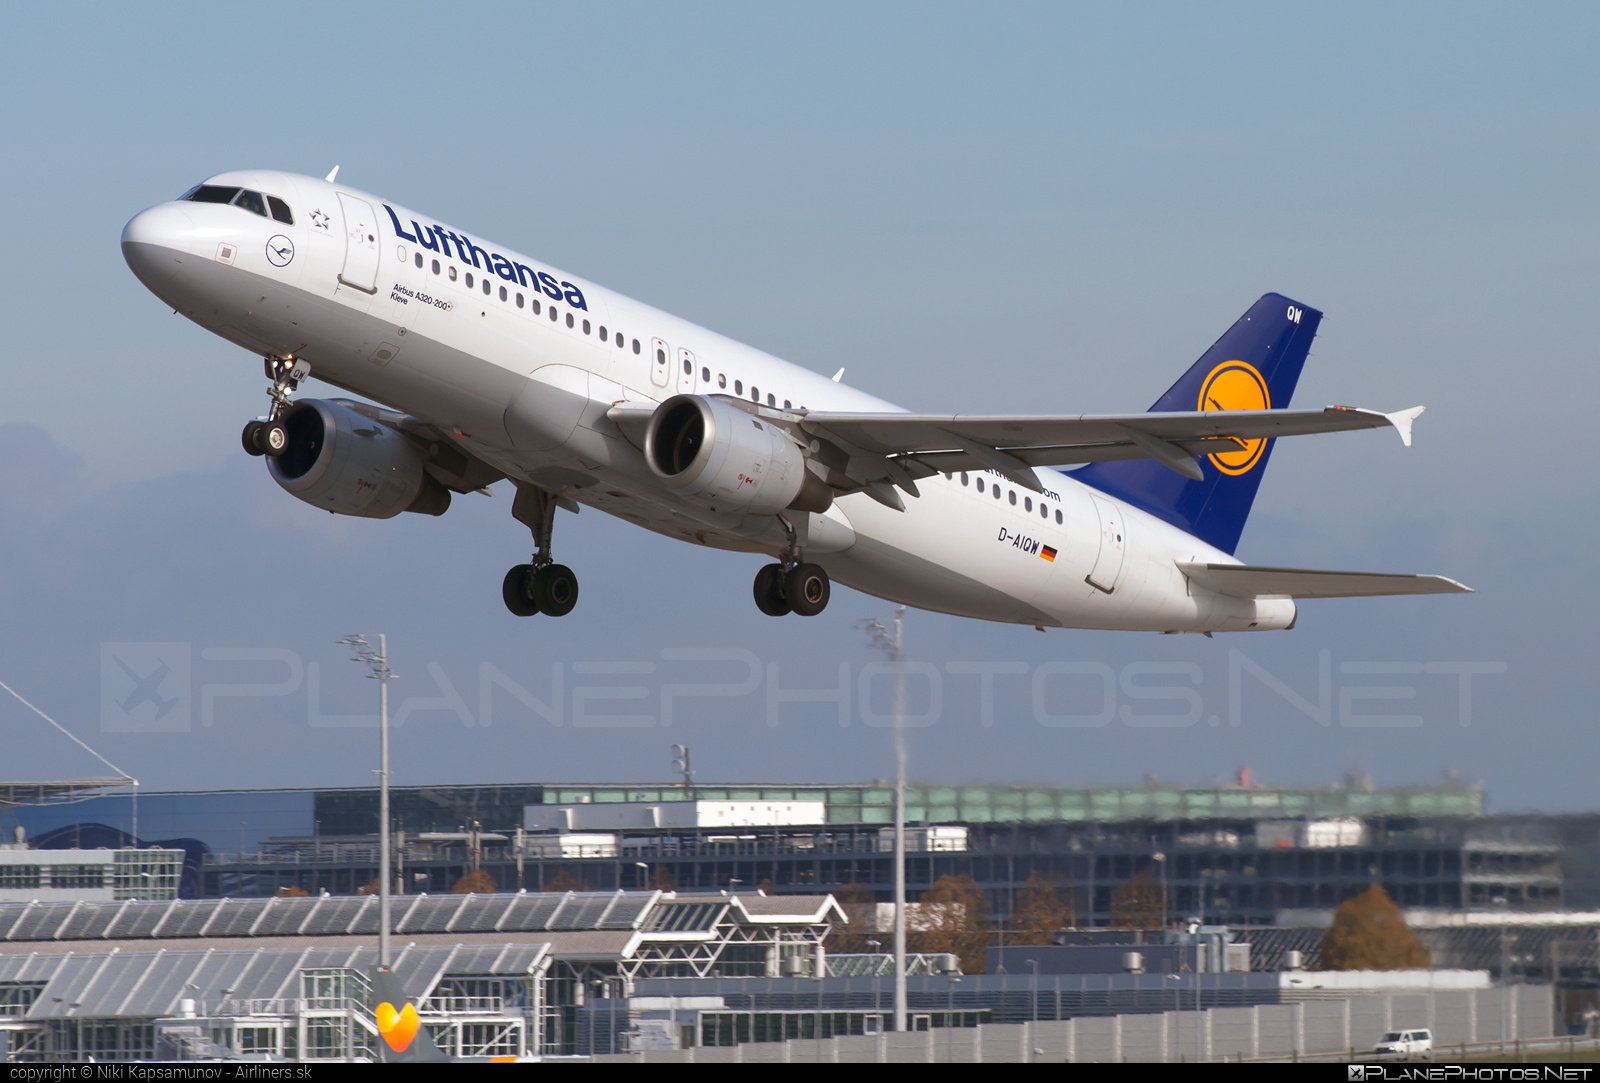 Airbus A320-211 - D-AIQW operated by Lufthansa #a320 #a320family #airbus #airbus320 #lufthansa